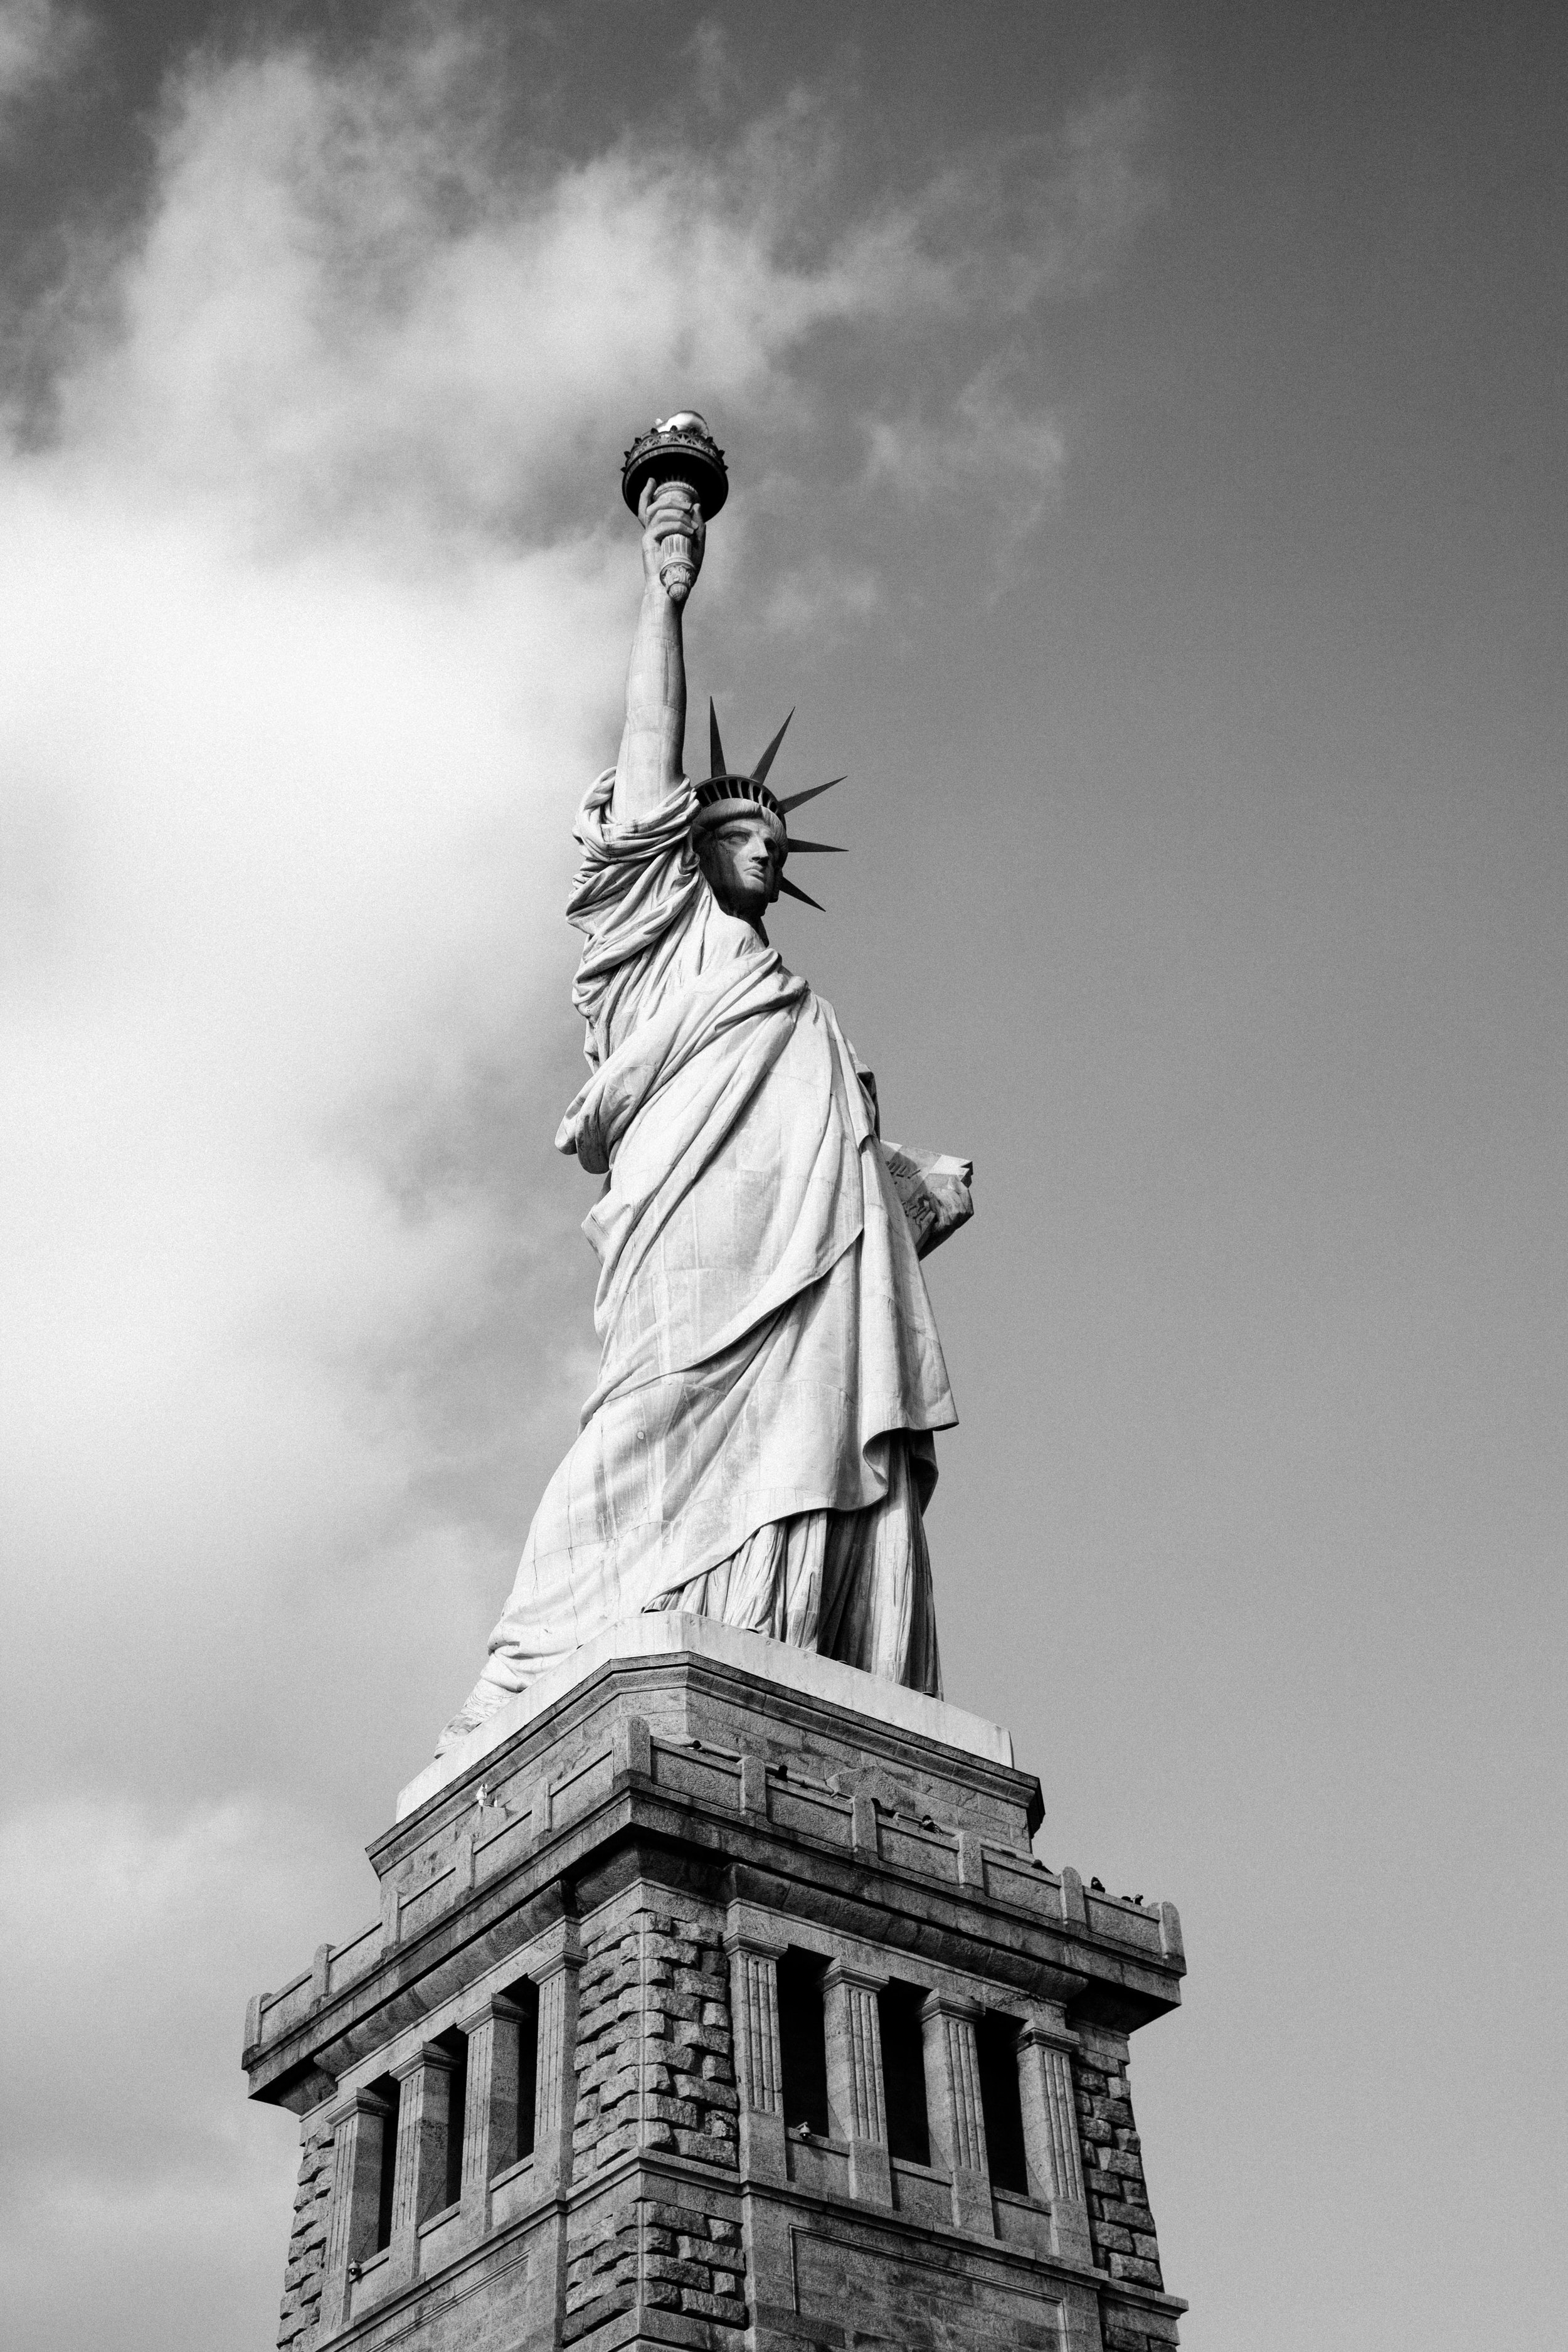 Awesome black and white photo of the staute of liberty.jpg